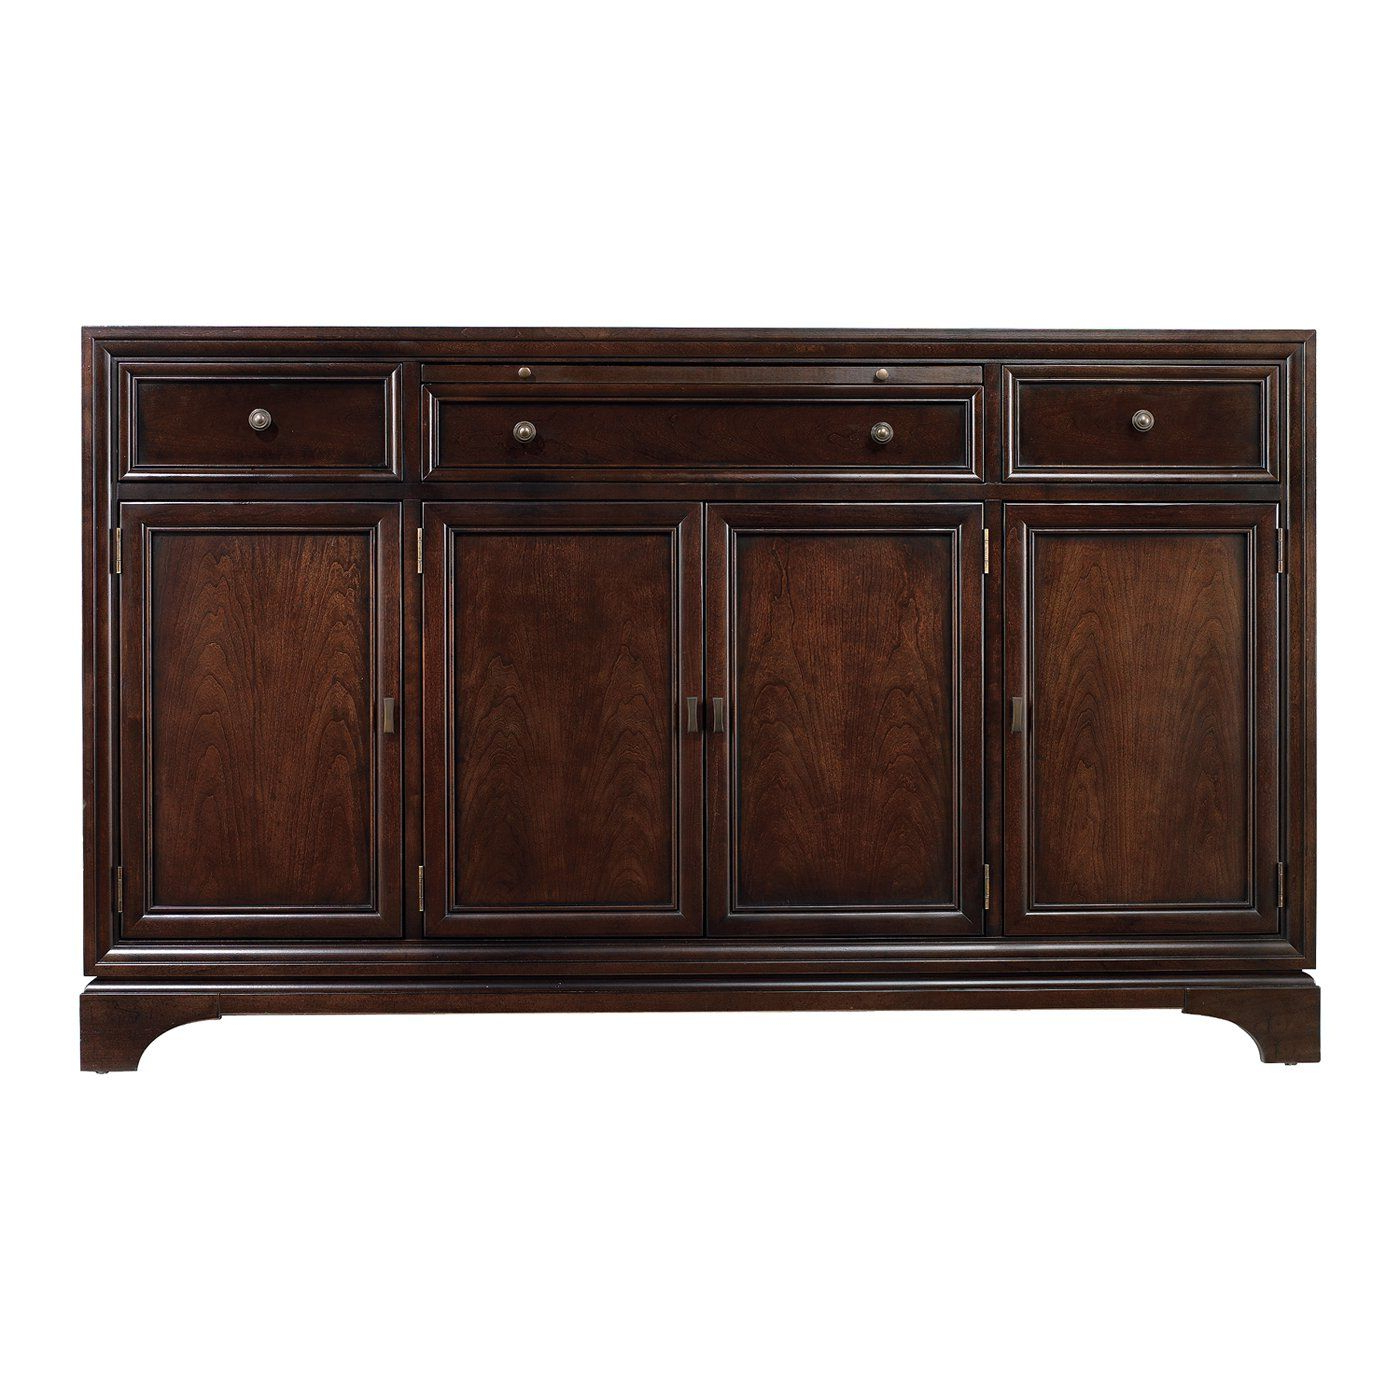 Stanley Furniture 816 61 07 Continuum Buffet Sideboard With Haroun Mocha Sideboards (View 17 of 20)